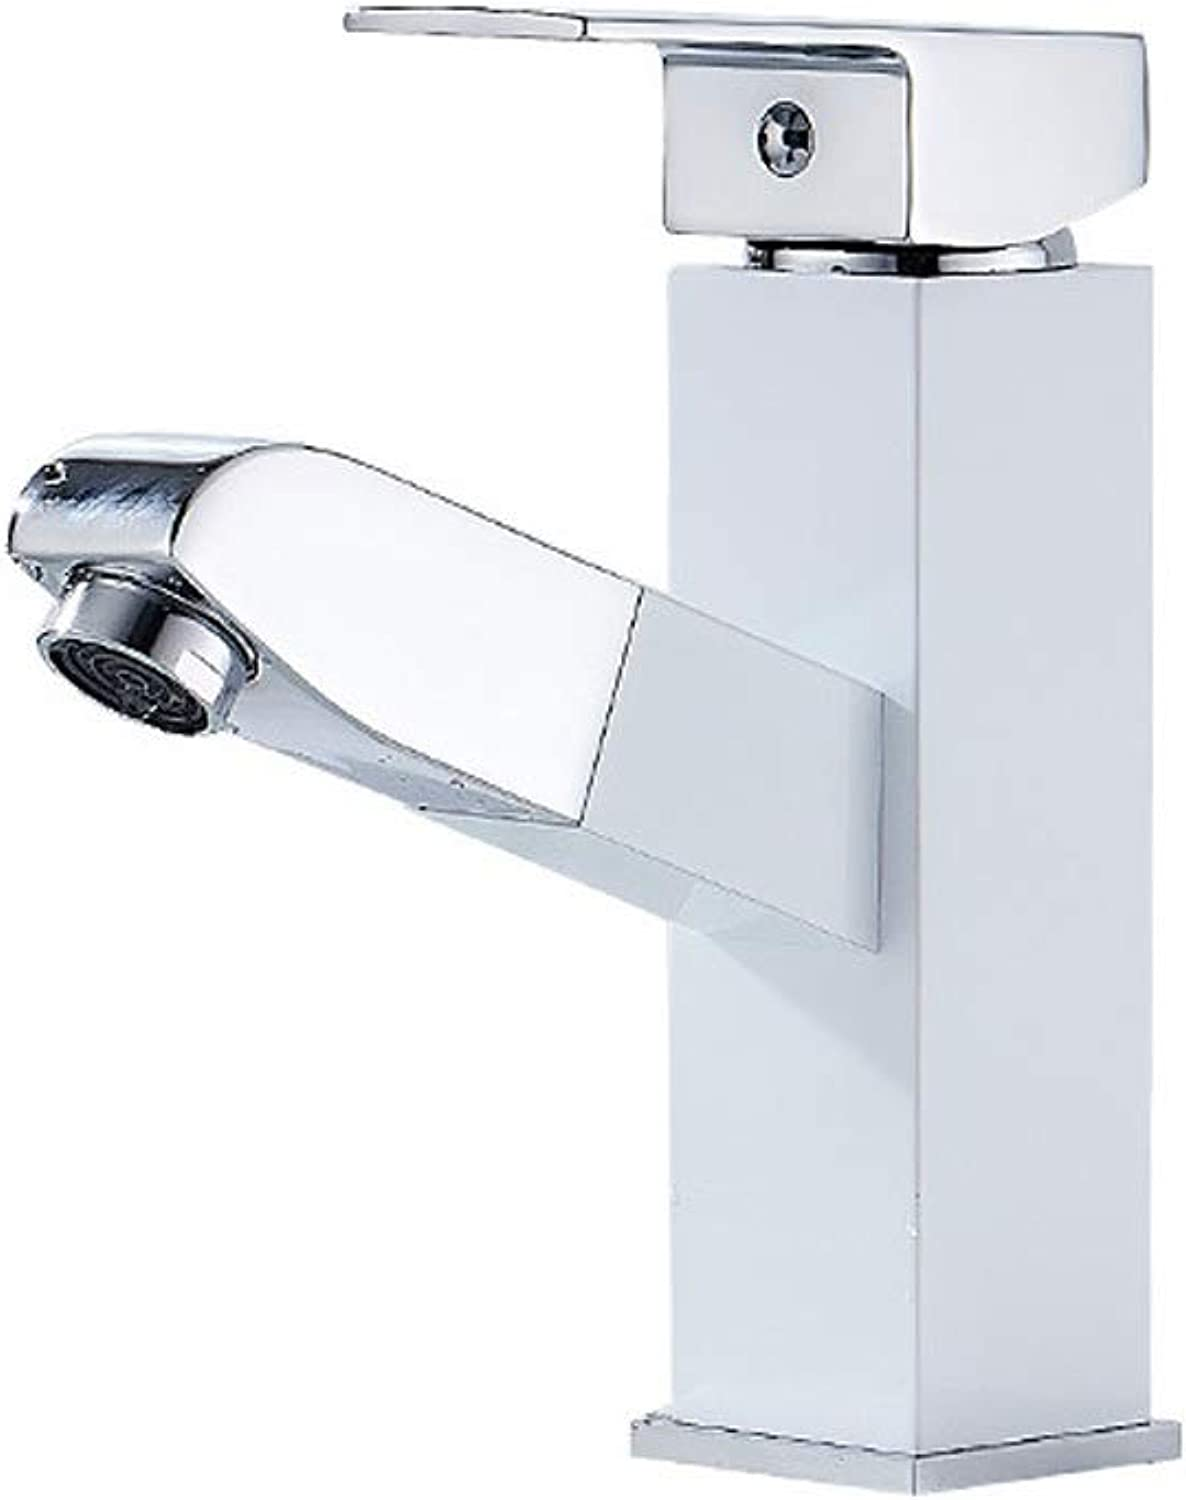 Fanxu Pull-Out Bathroom Basin Faucet Copper Hot and Cold Mixing Faucet (7 colors 2 Sizes) (color   Silver colorA)